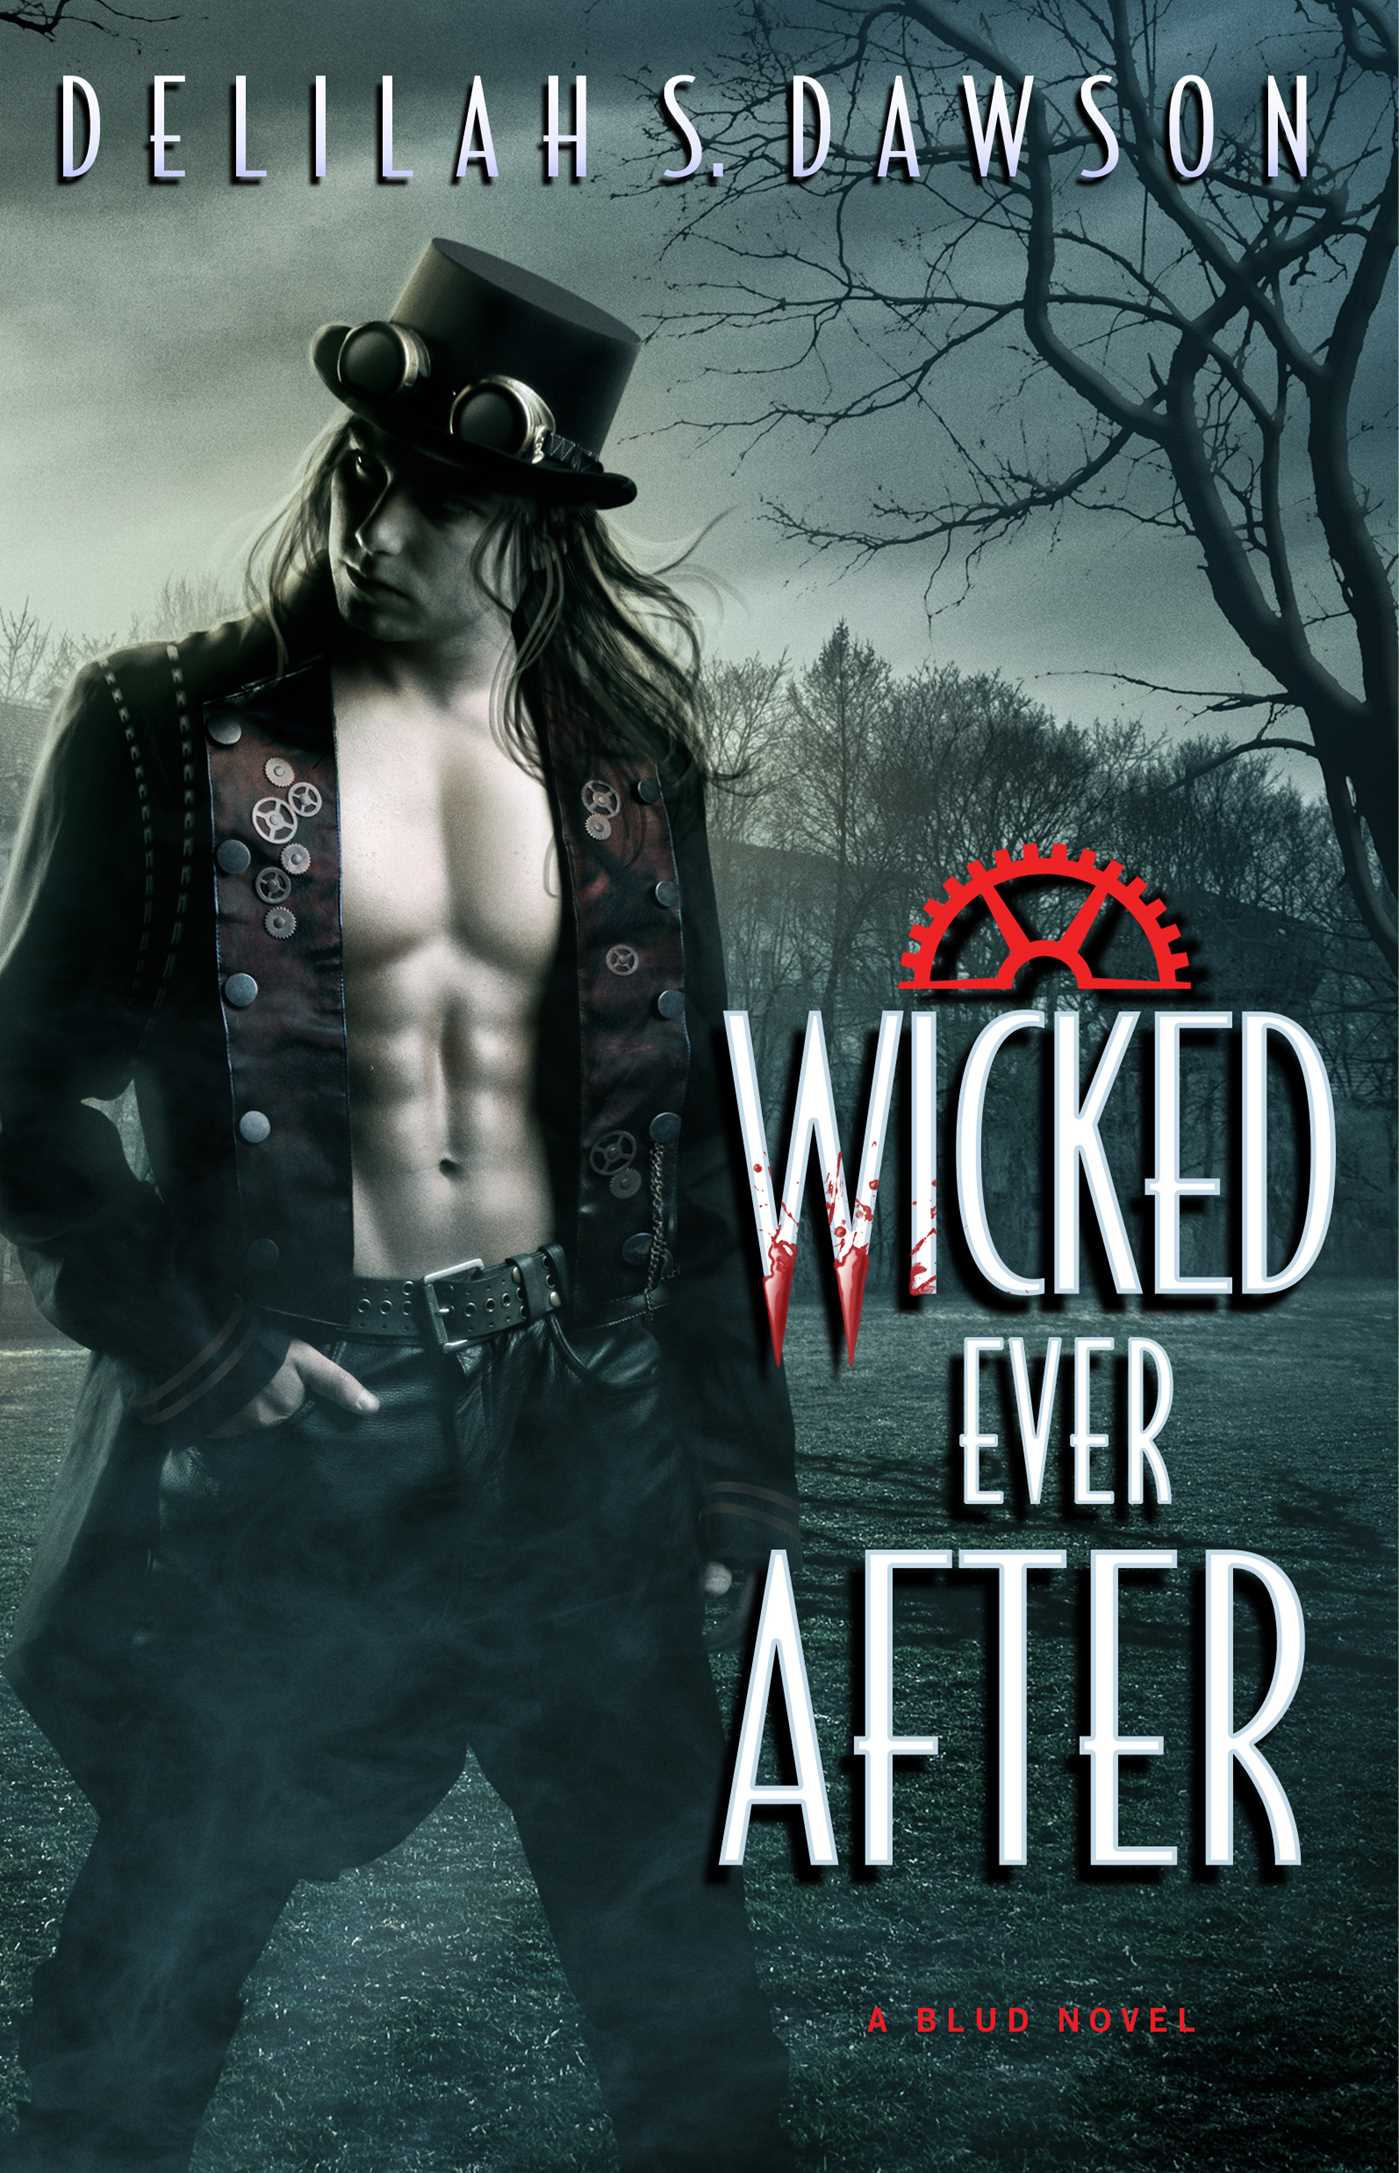 Wicked ever after 9781501102110 hr